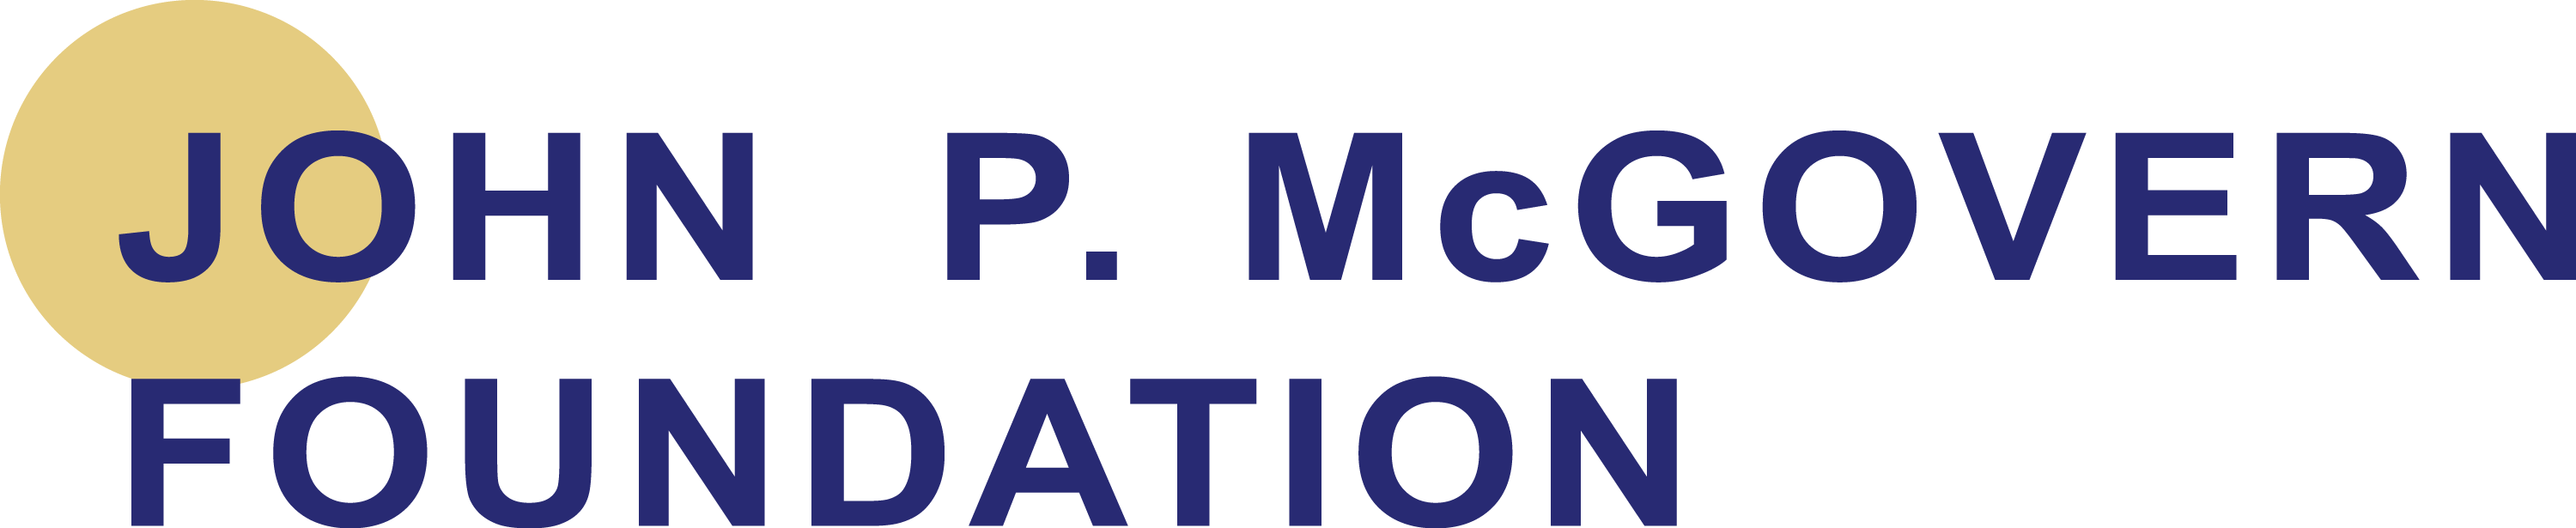 John P. McGovern Foundation